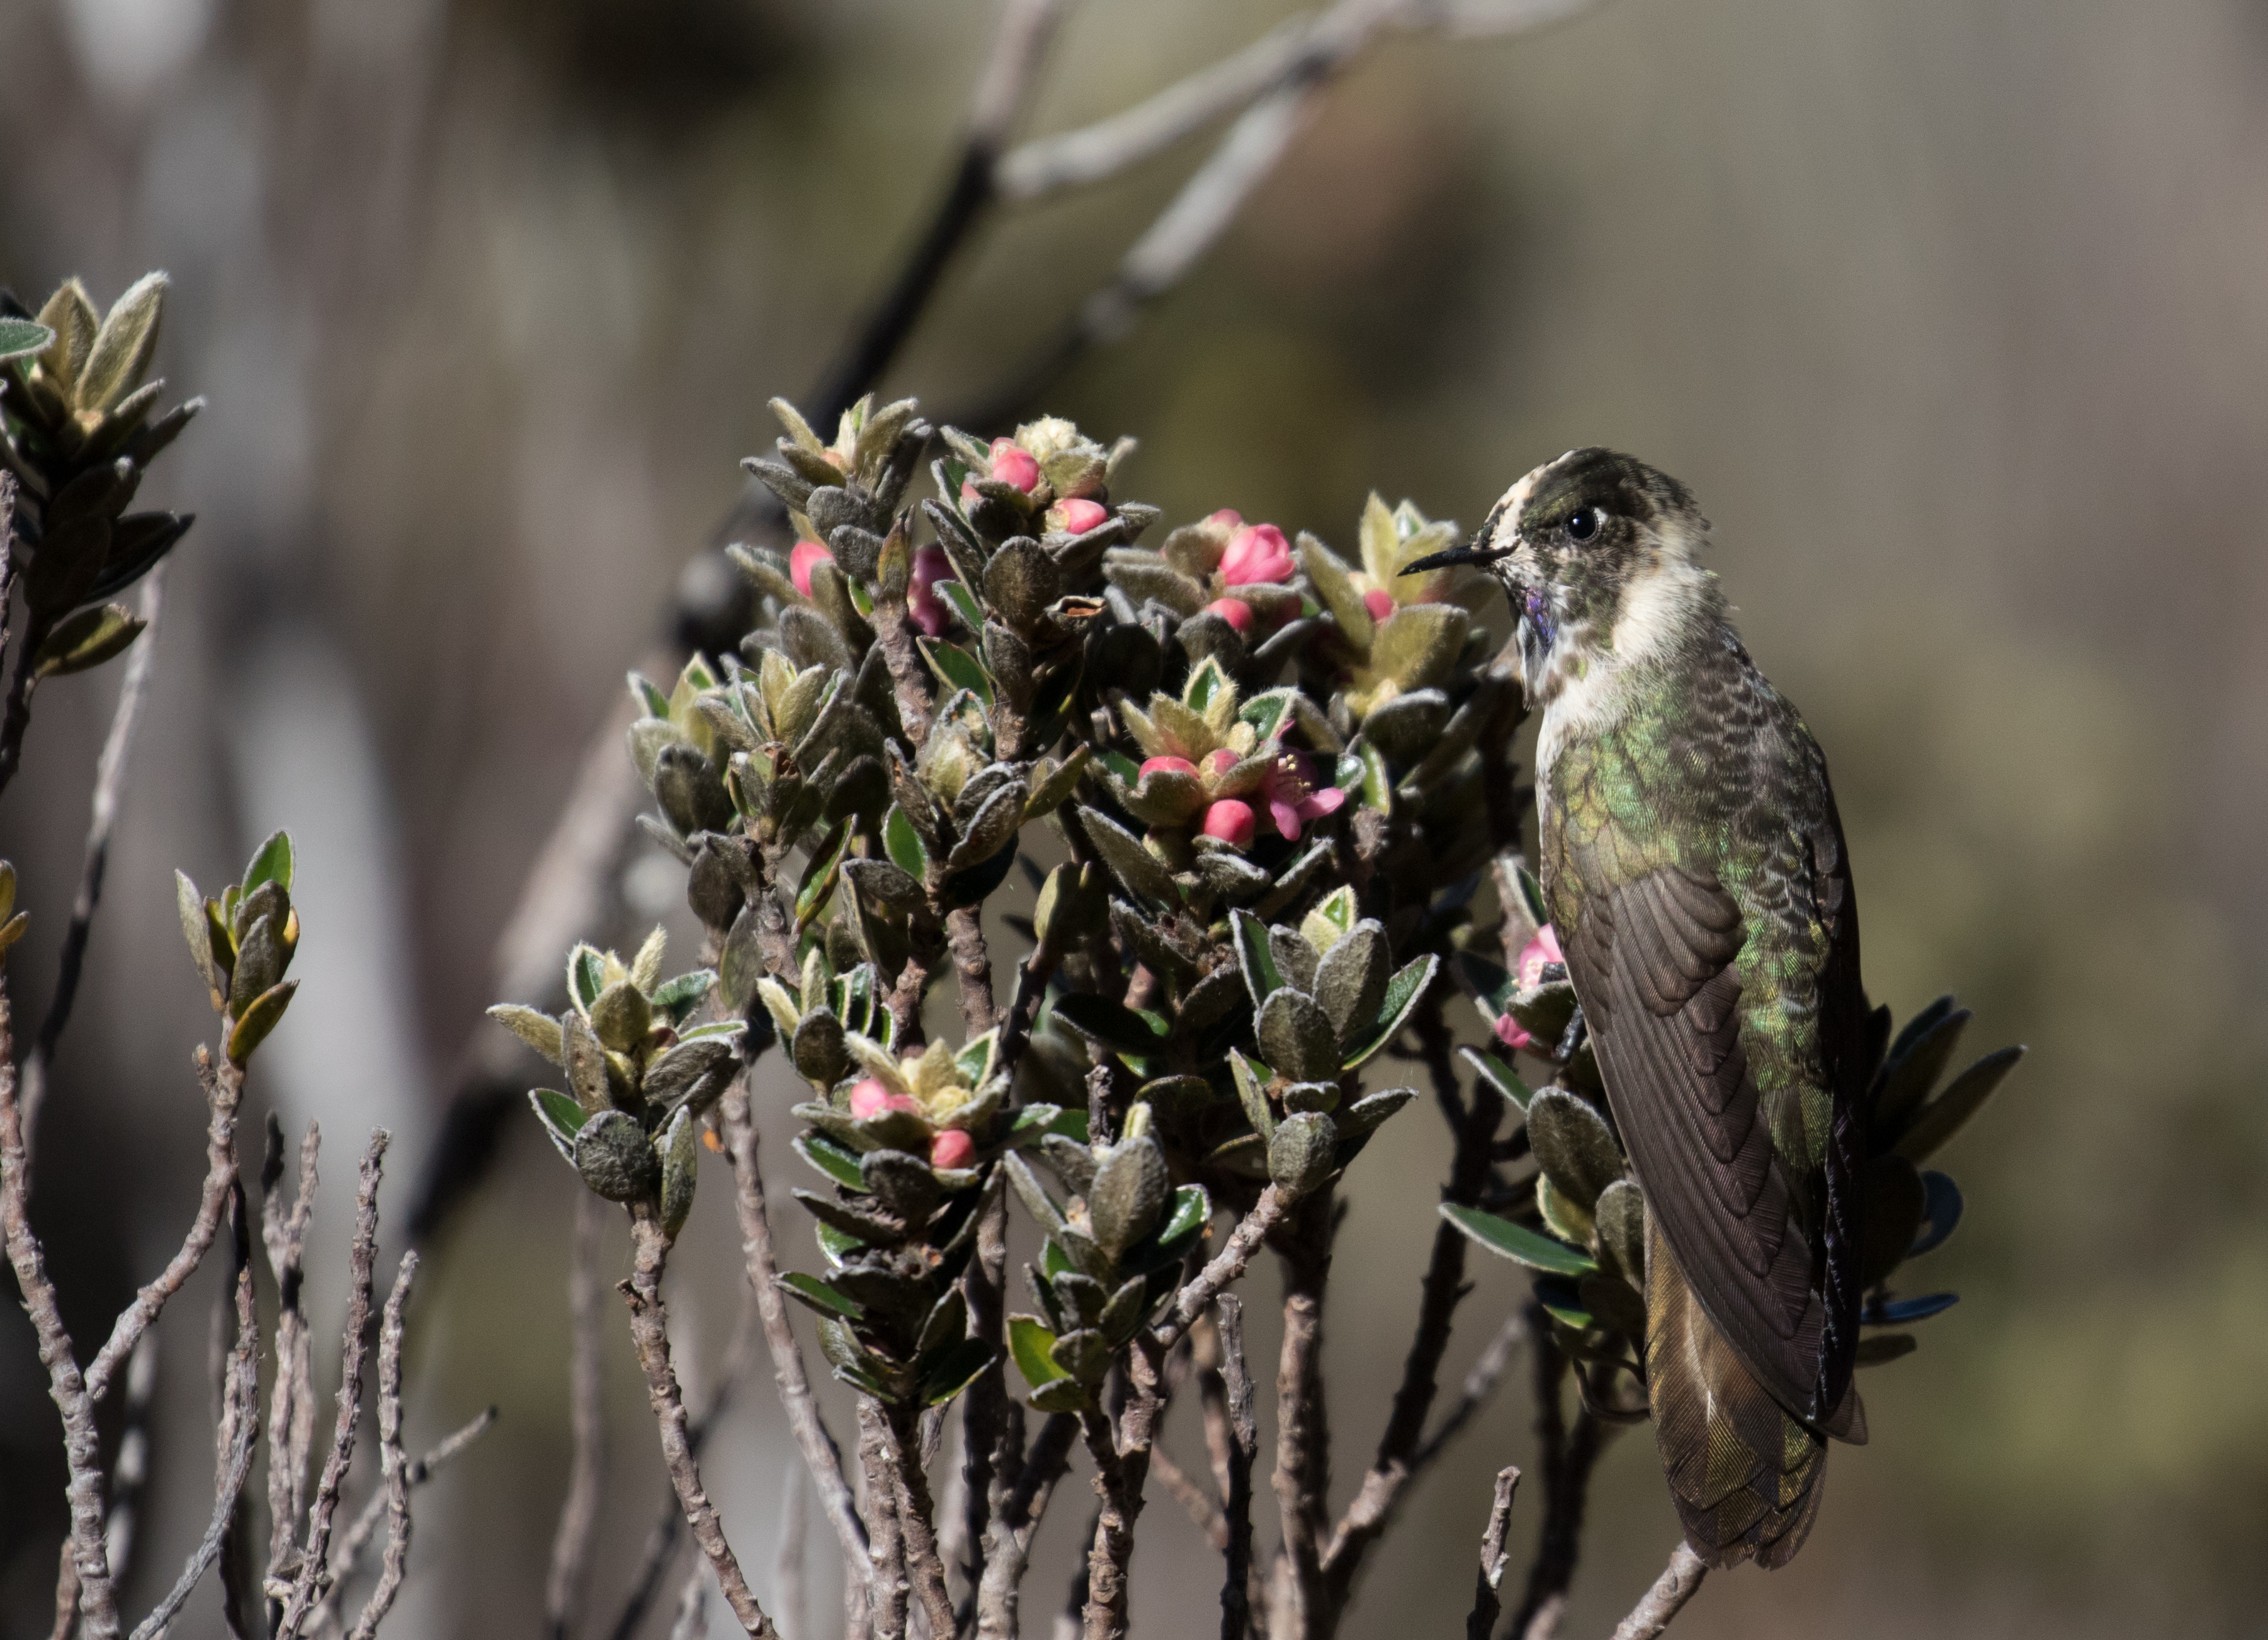 Oxypogon in the Sky: A Search for One of the World's Rarest Hummingbirds